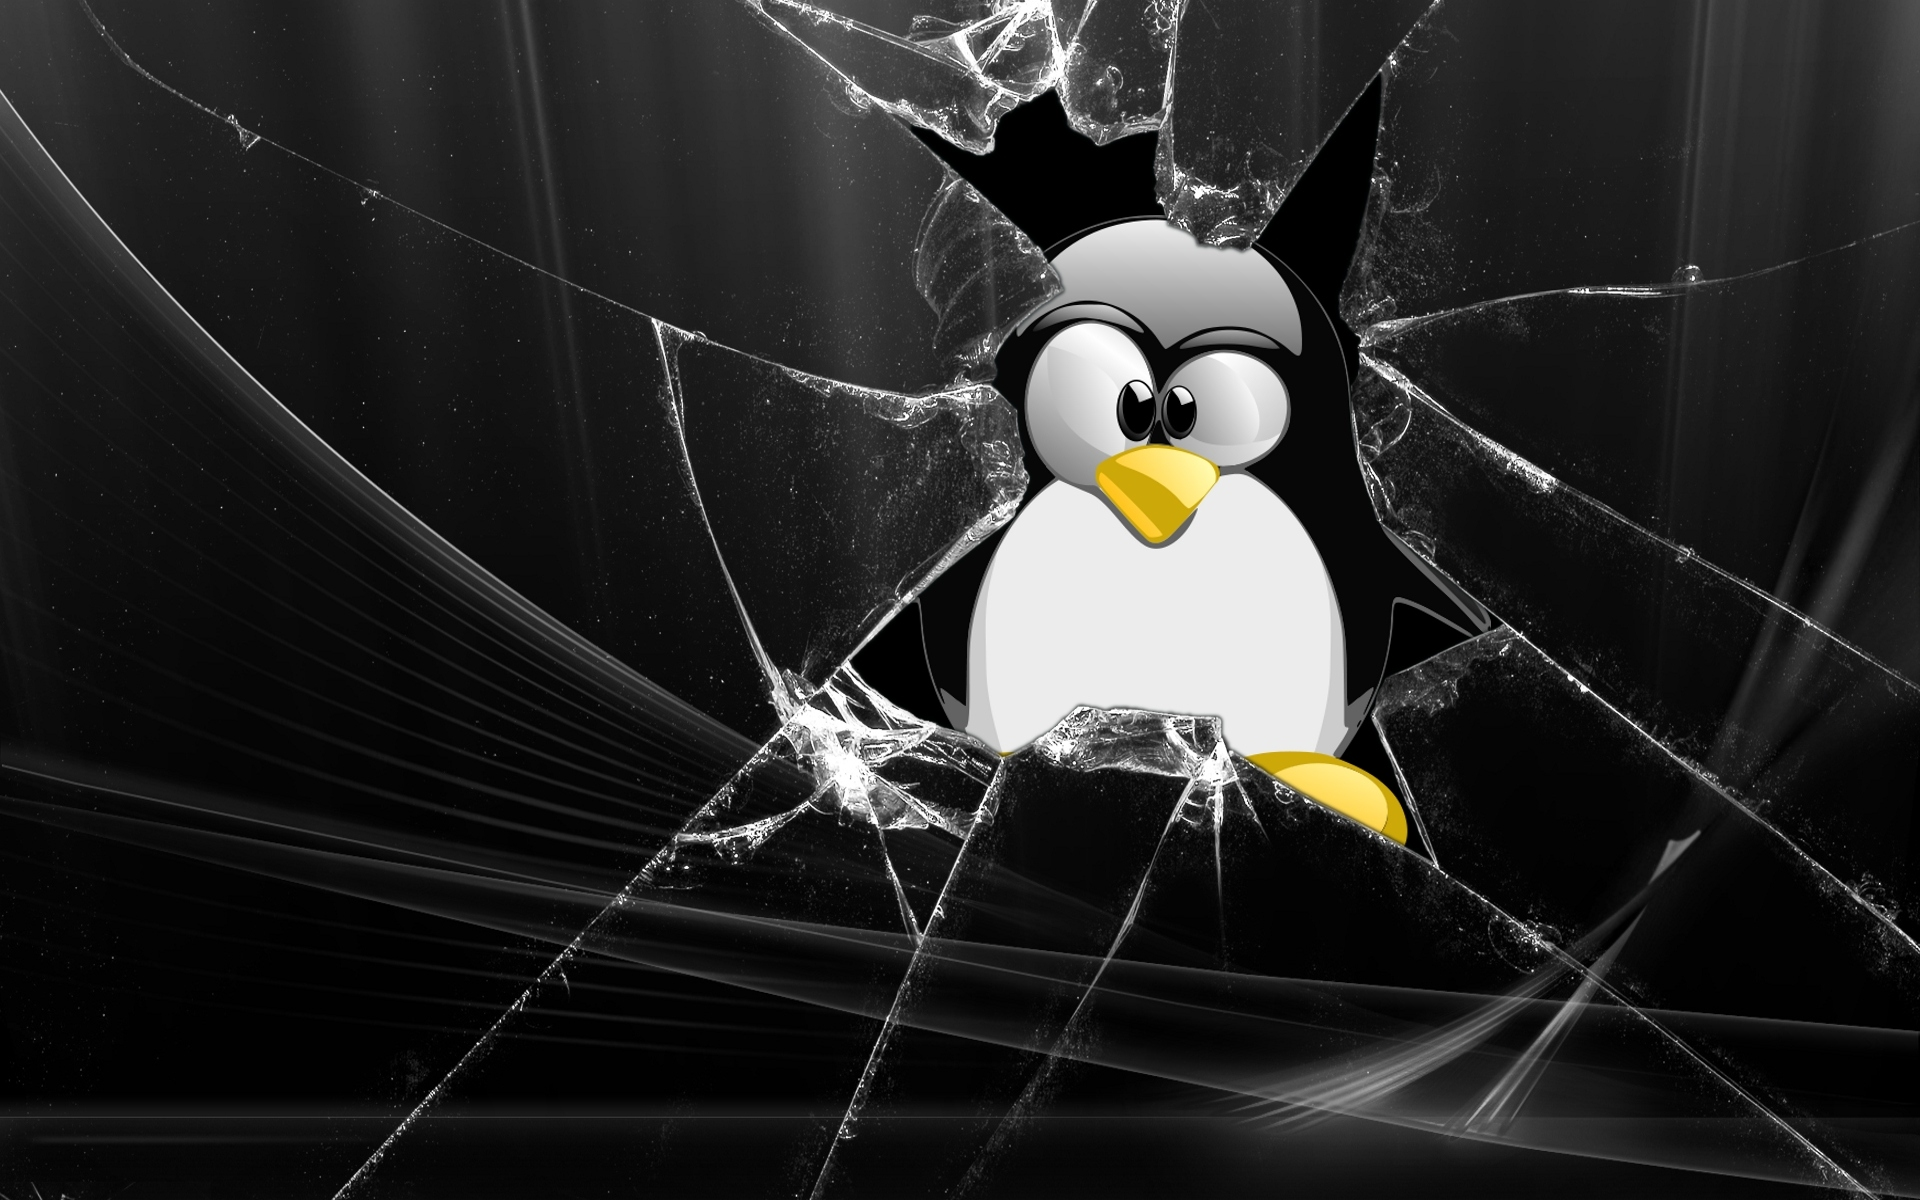 blog/ivans1/history-of-linux